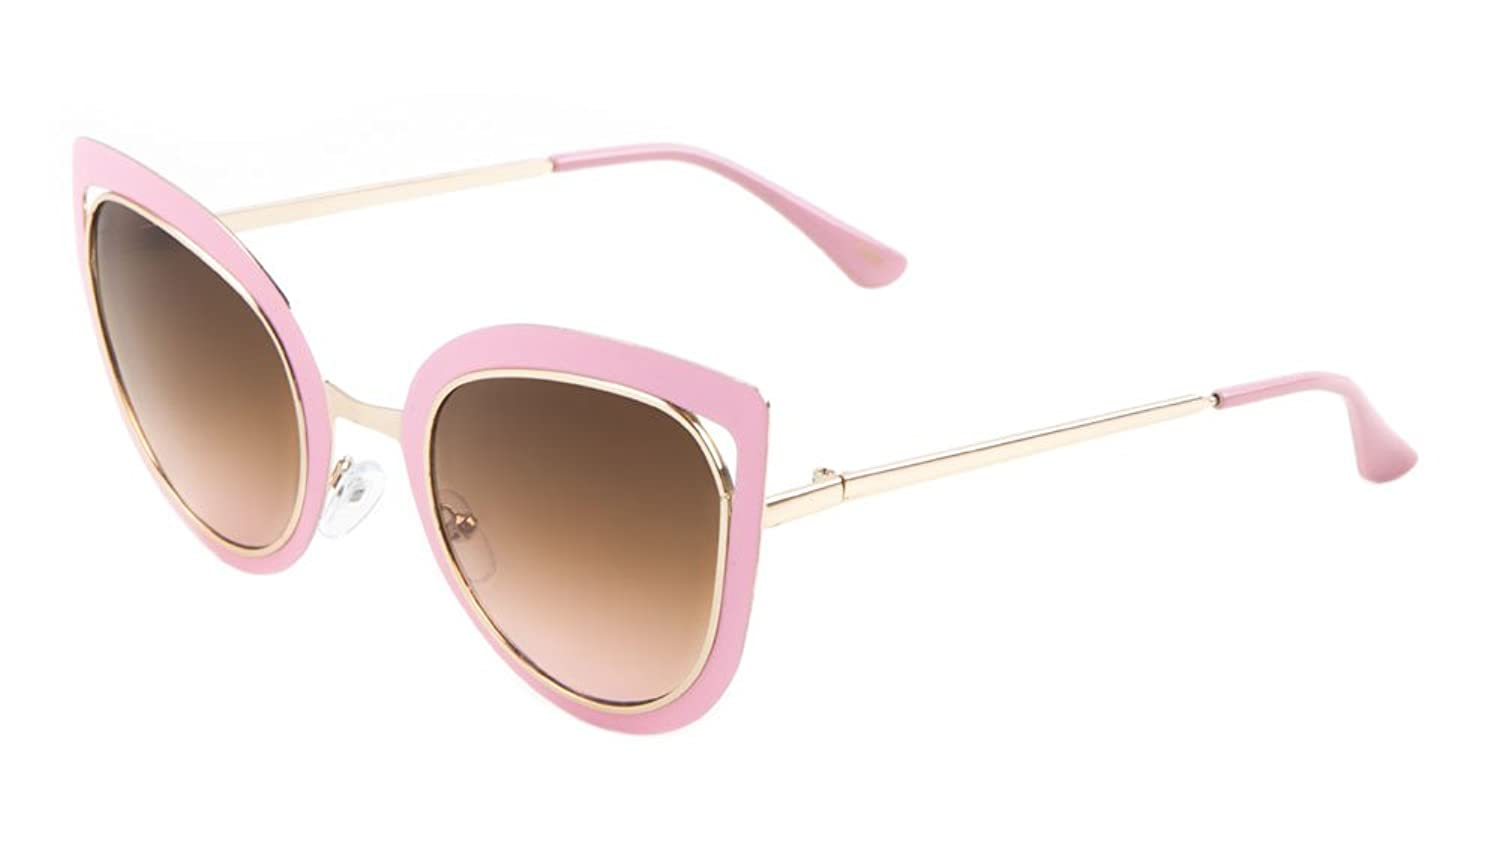 Sunglasses Luxe. Metal Cat Eye Sunglasses. (PINK AMBER)